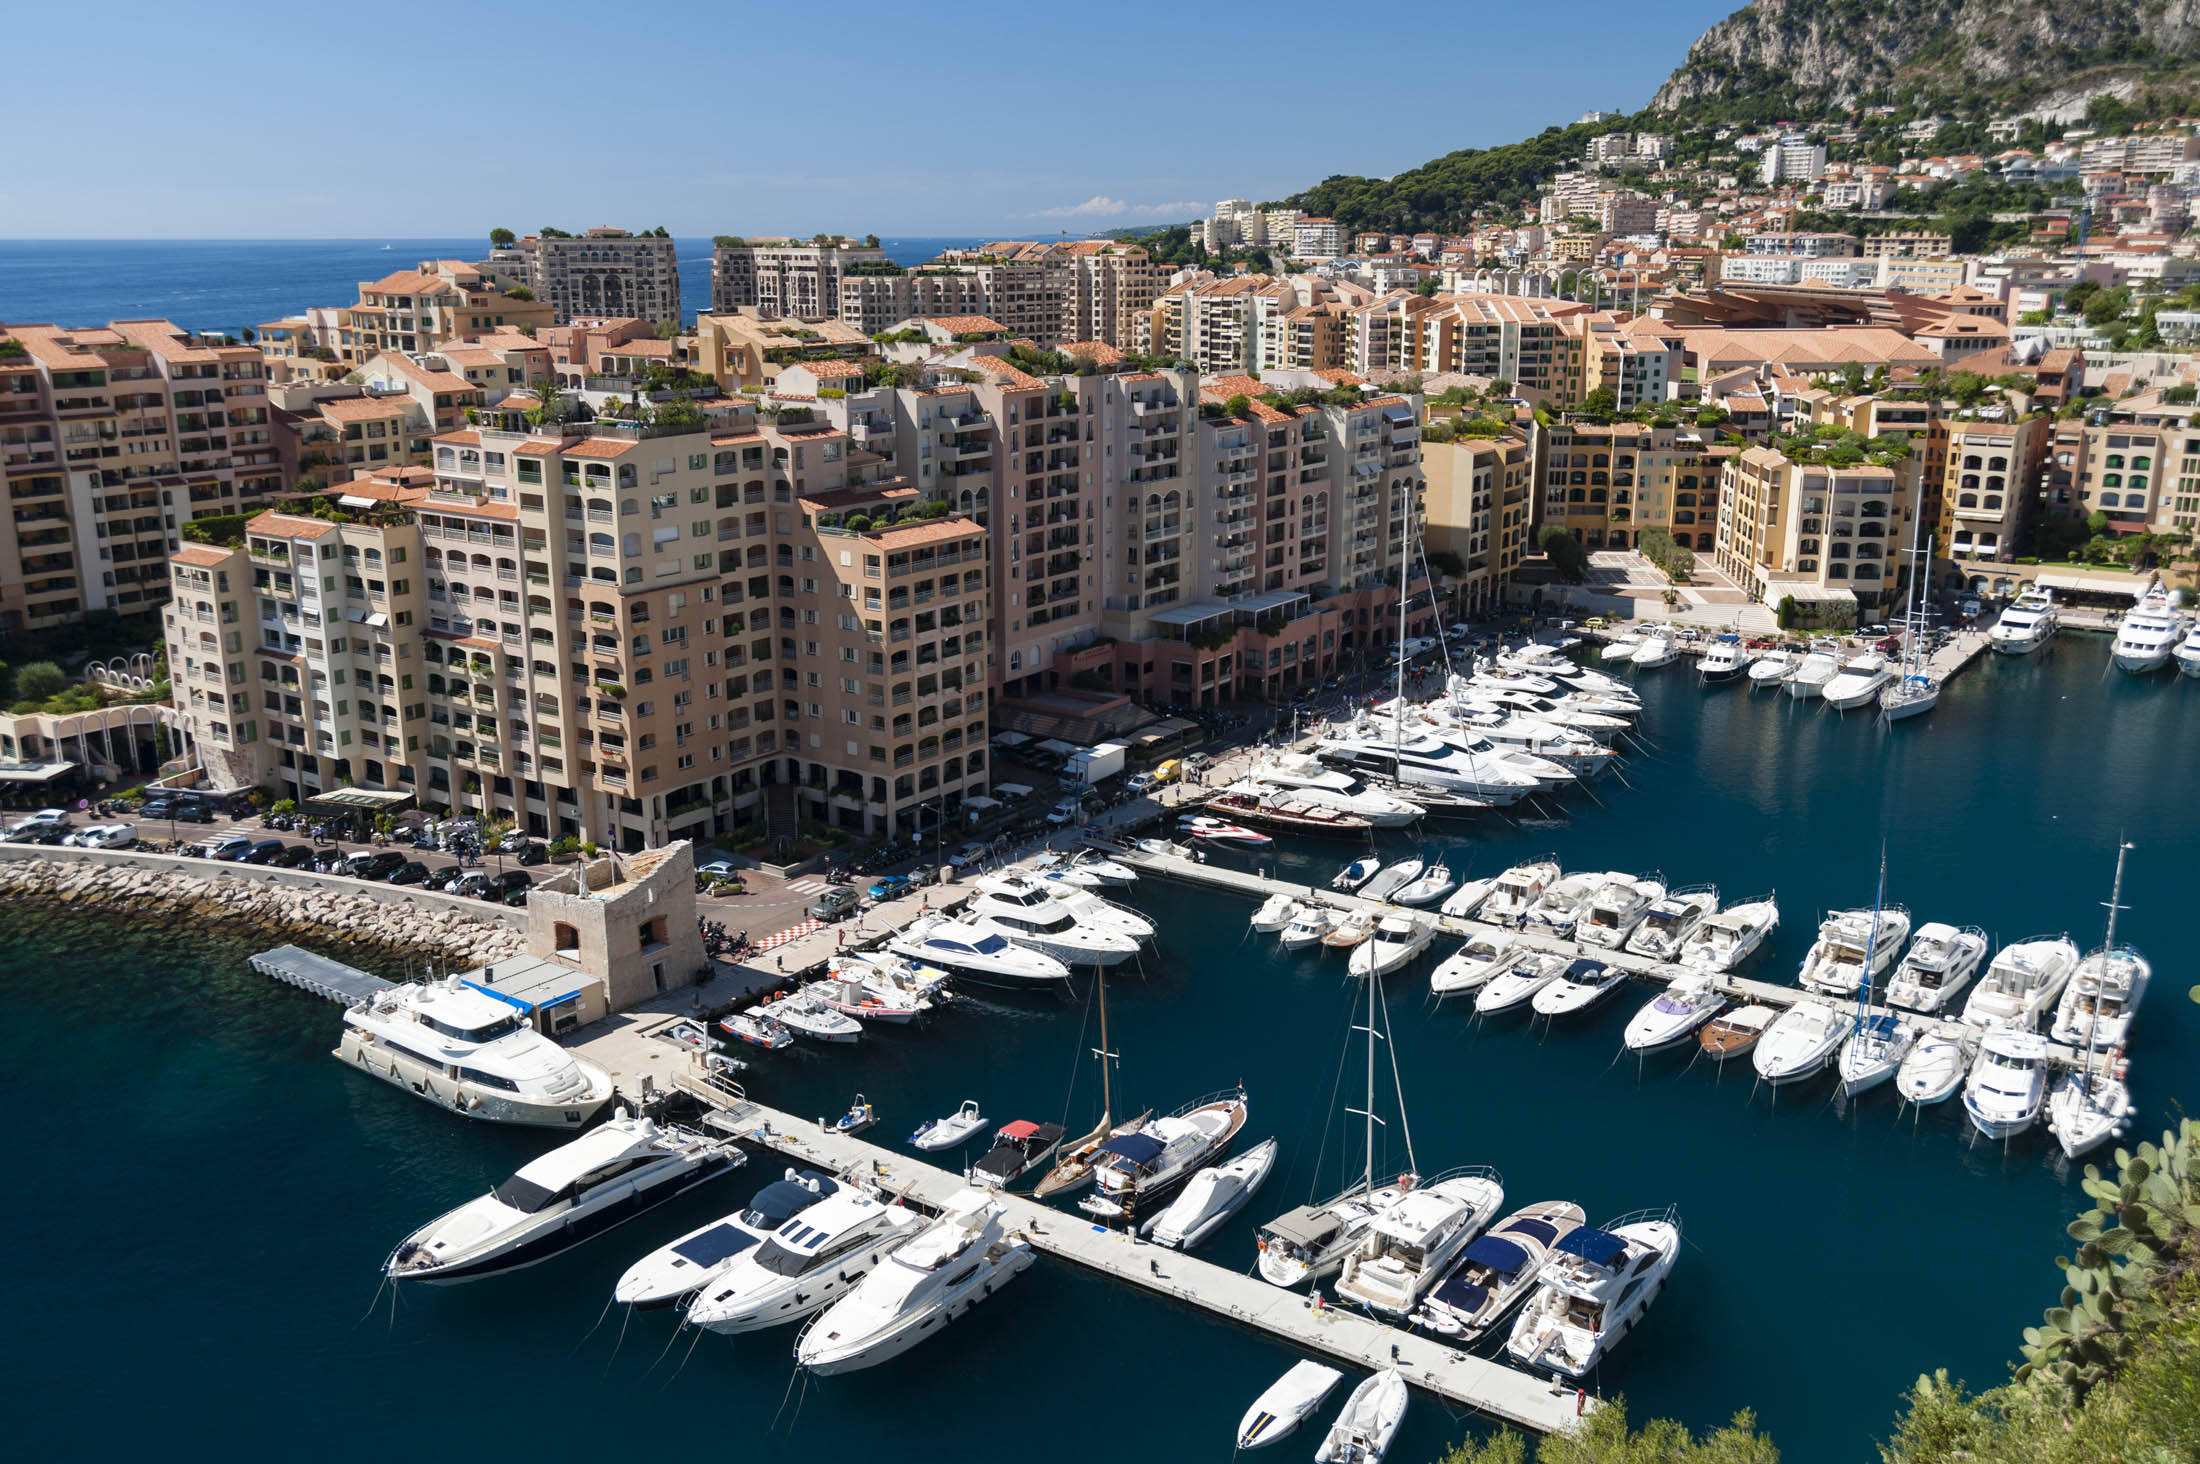 With a New App, You Can Live the Yacht Life for $120 a Day | Bloomberg